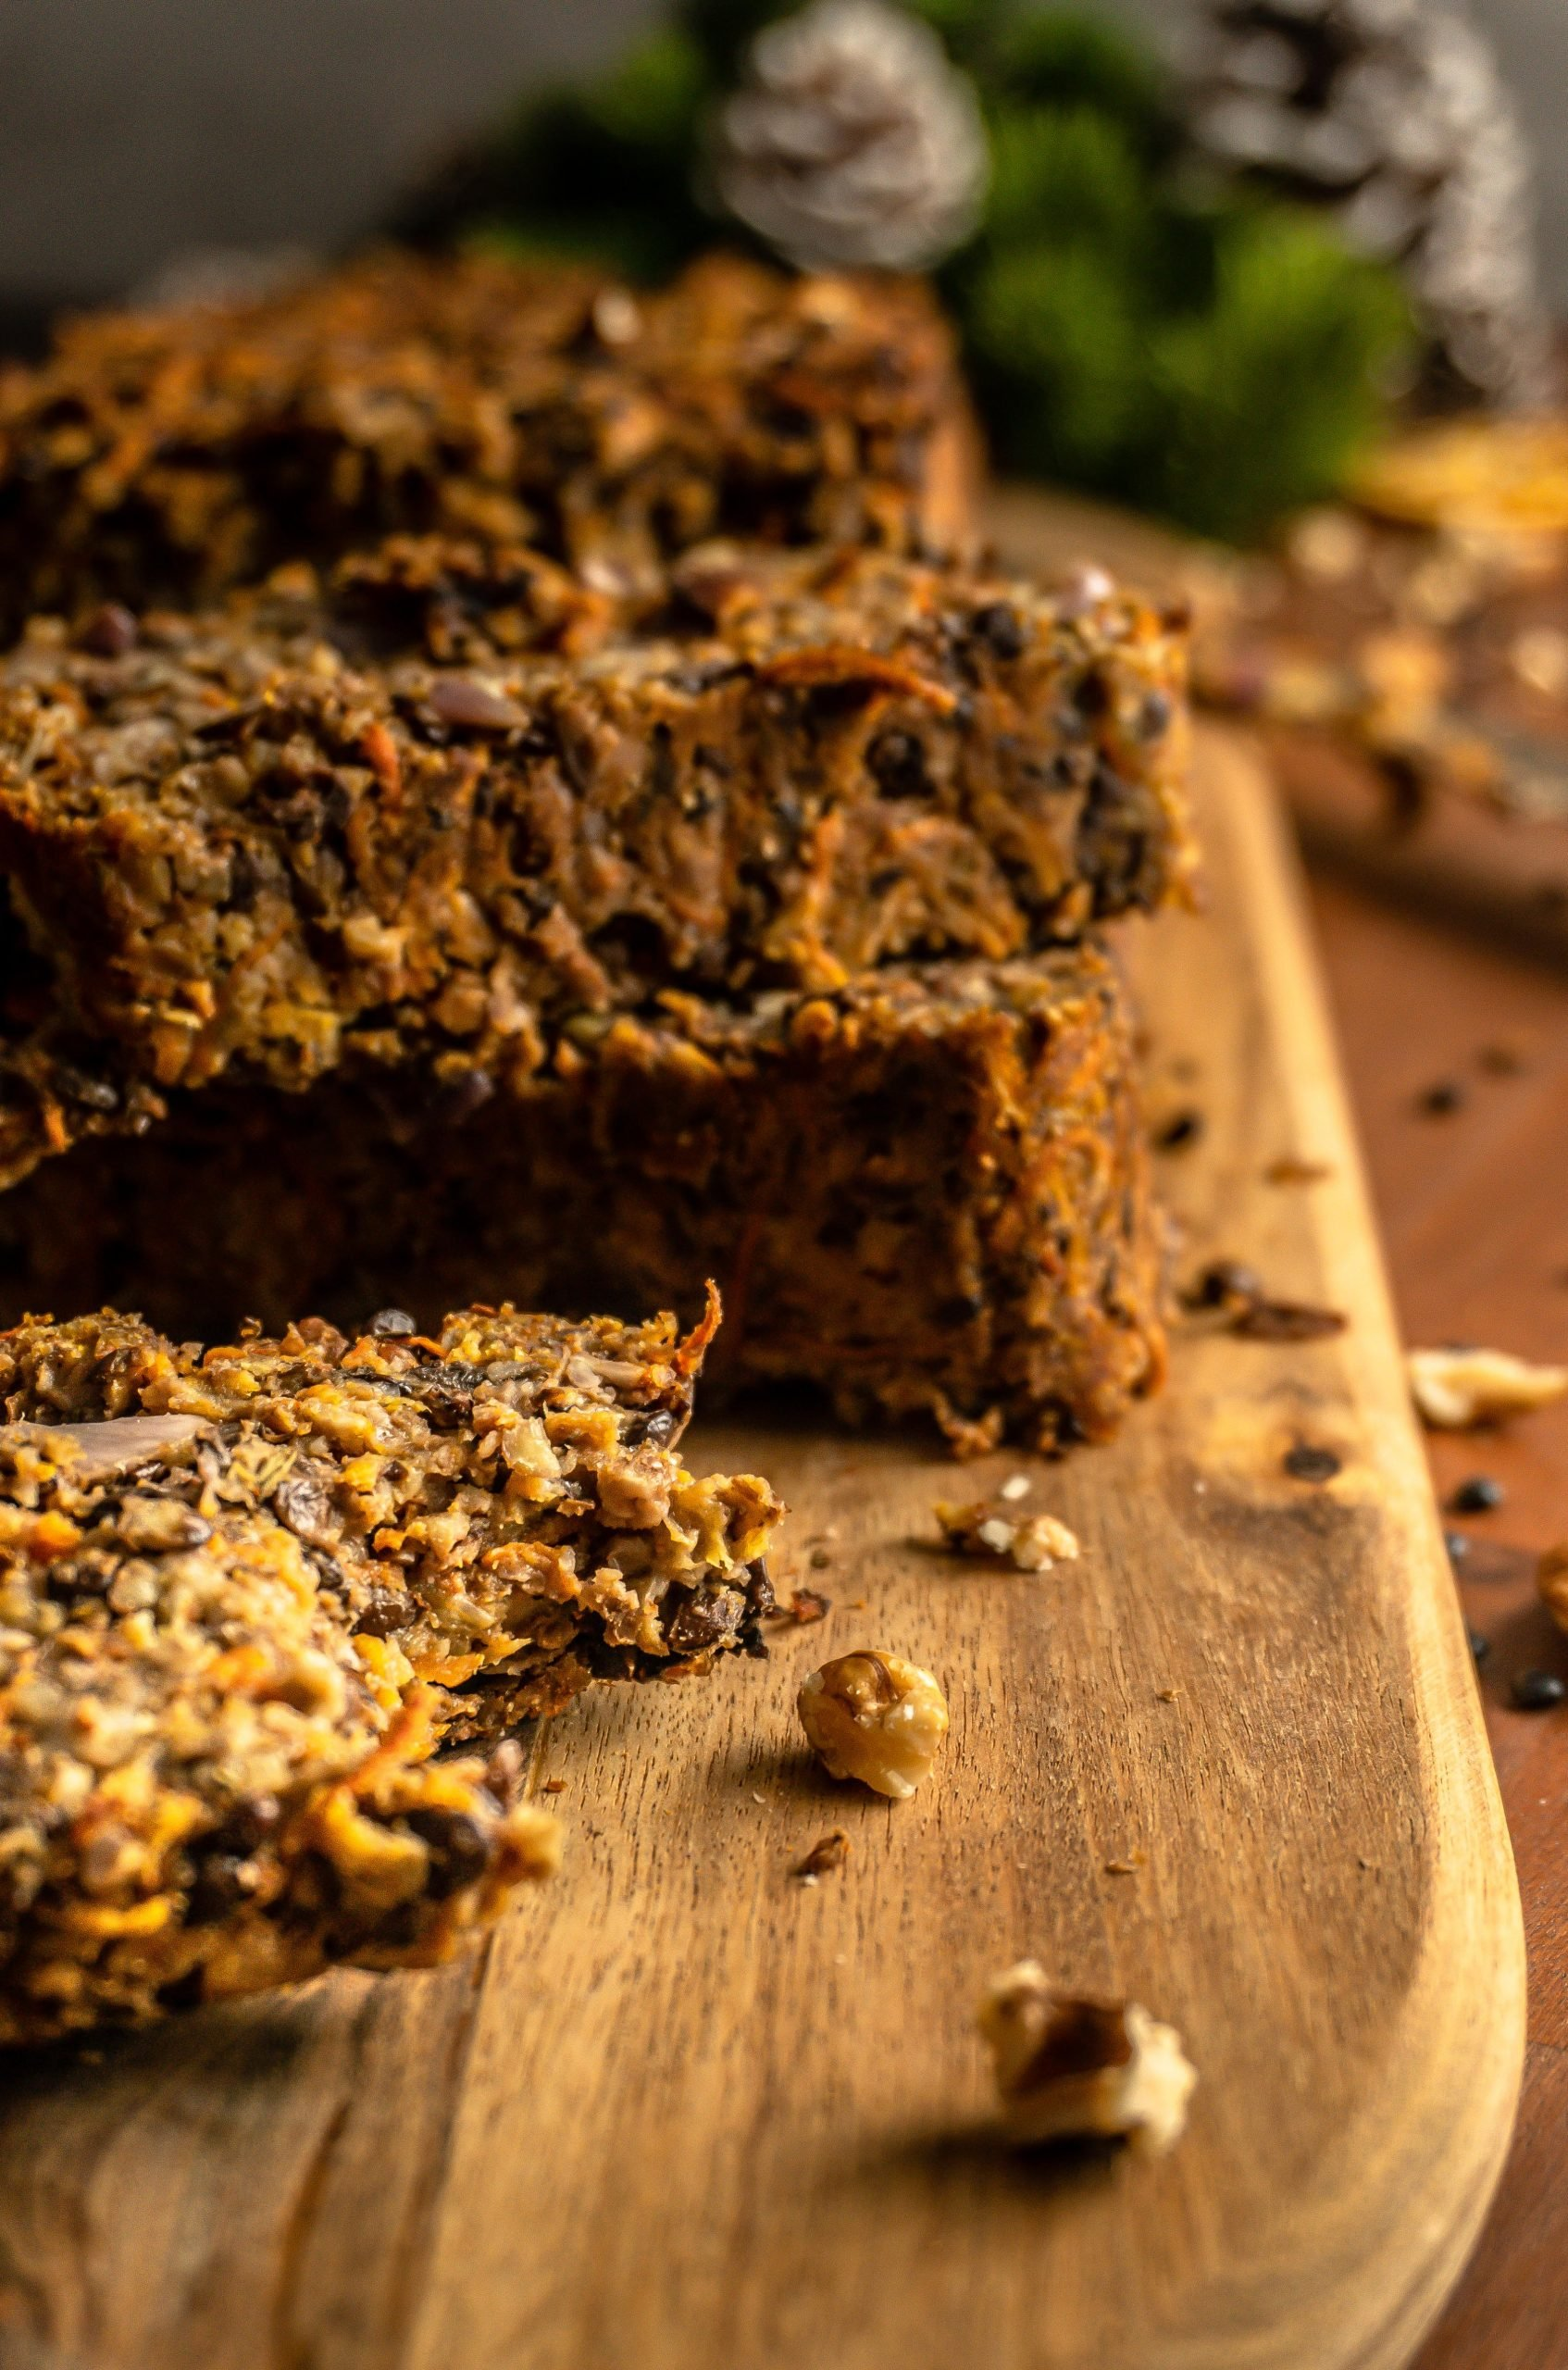 """Bitten into piece from the Lentil Mushroom Walnut """"Meat"""" Loaf with some further slices visible in the background. Shot from a side angle."""